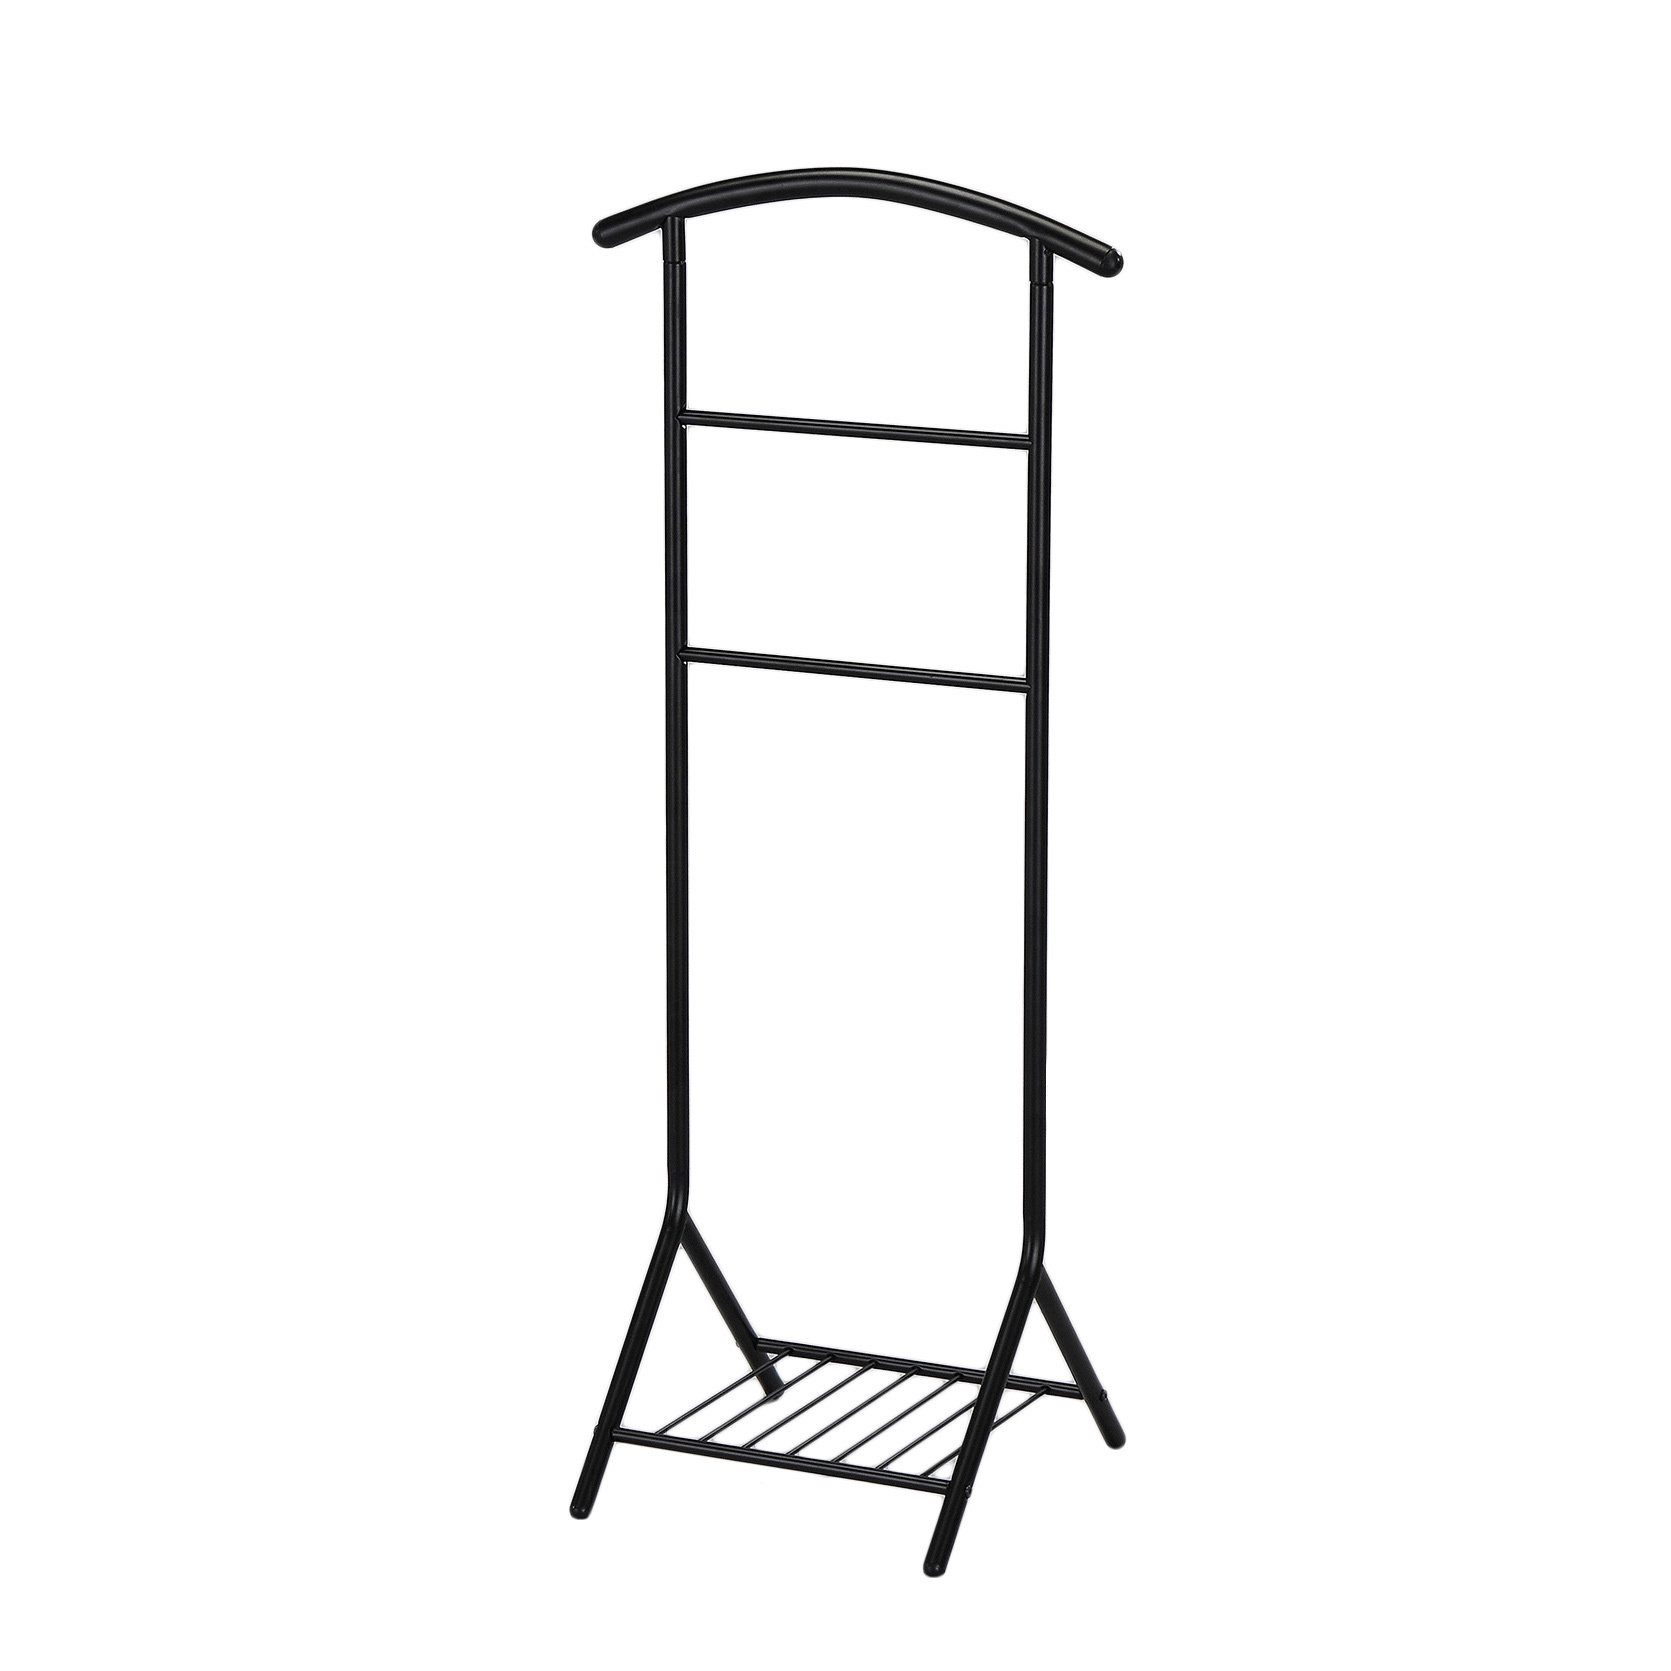 Best, Elegant and Free Standing Black Metal Clothes Valet Stand Organizer